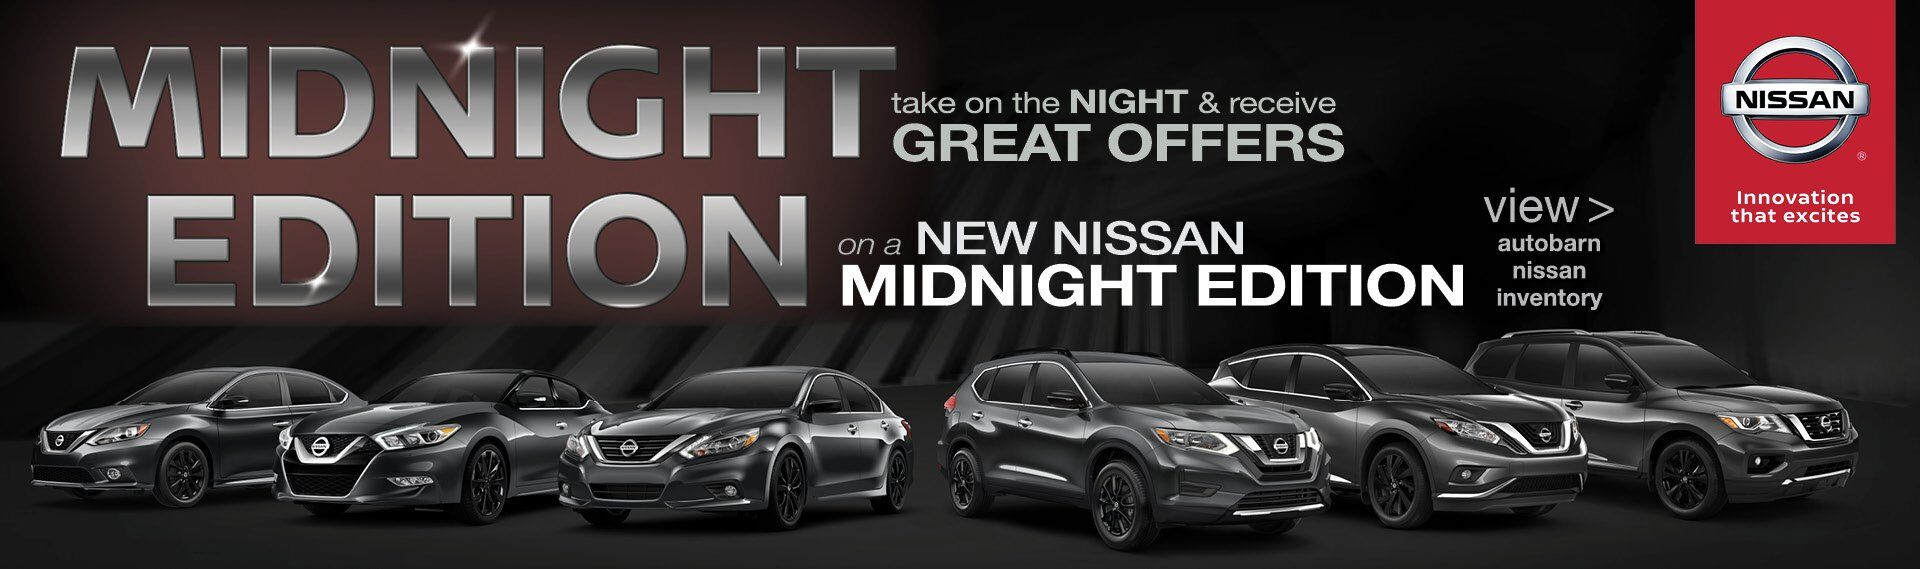 Take On The Night With a Nissan Midnight Edition